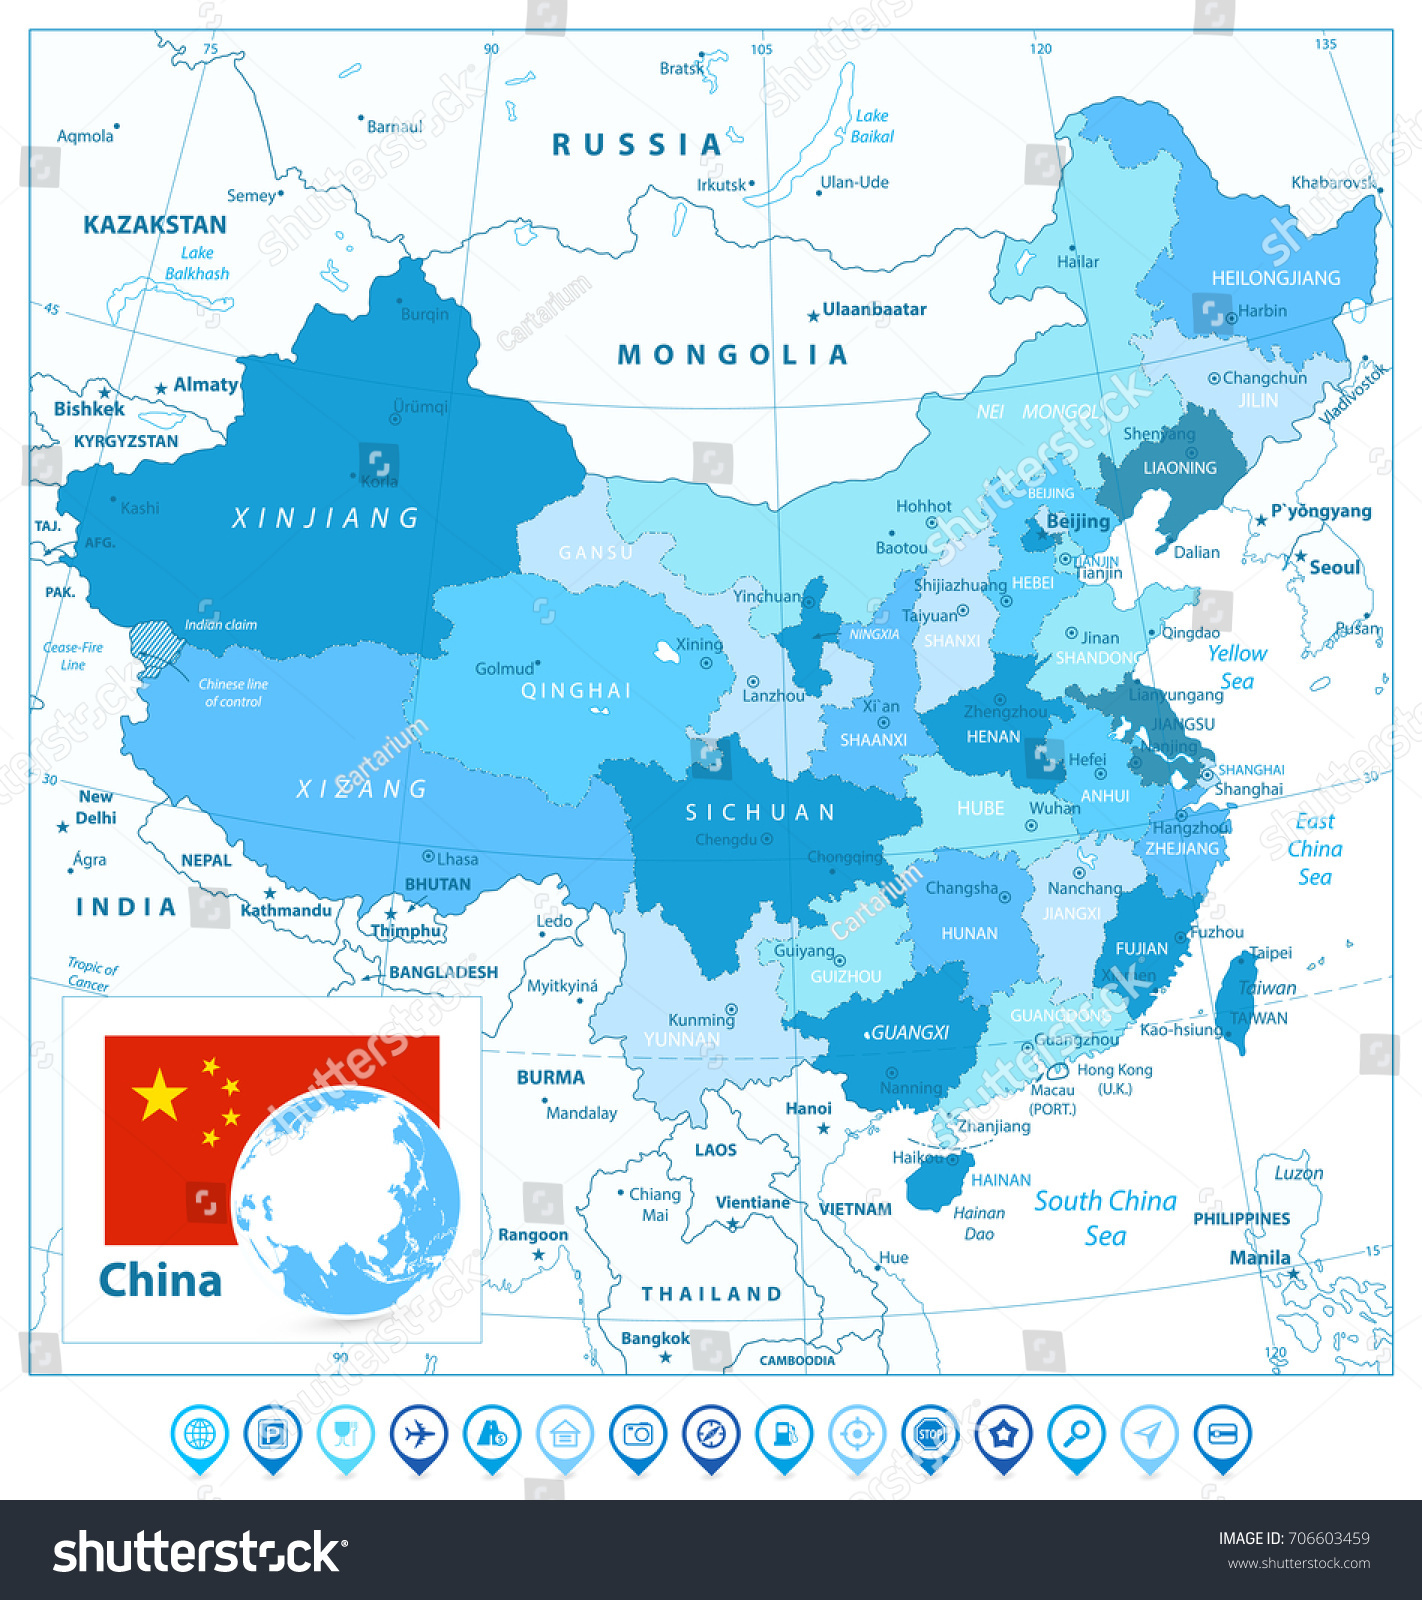 China map map pointers colors blue vectores en stock 706603459 china map and map pointers in colors of blue detailed vector map of china gumiabroncs Image collections